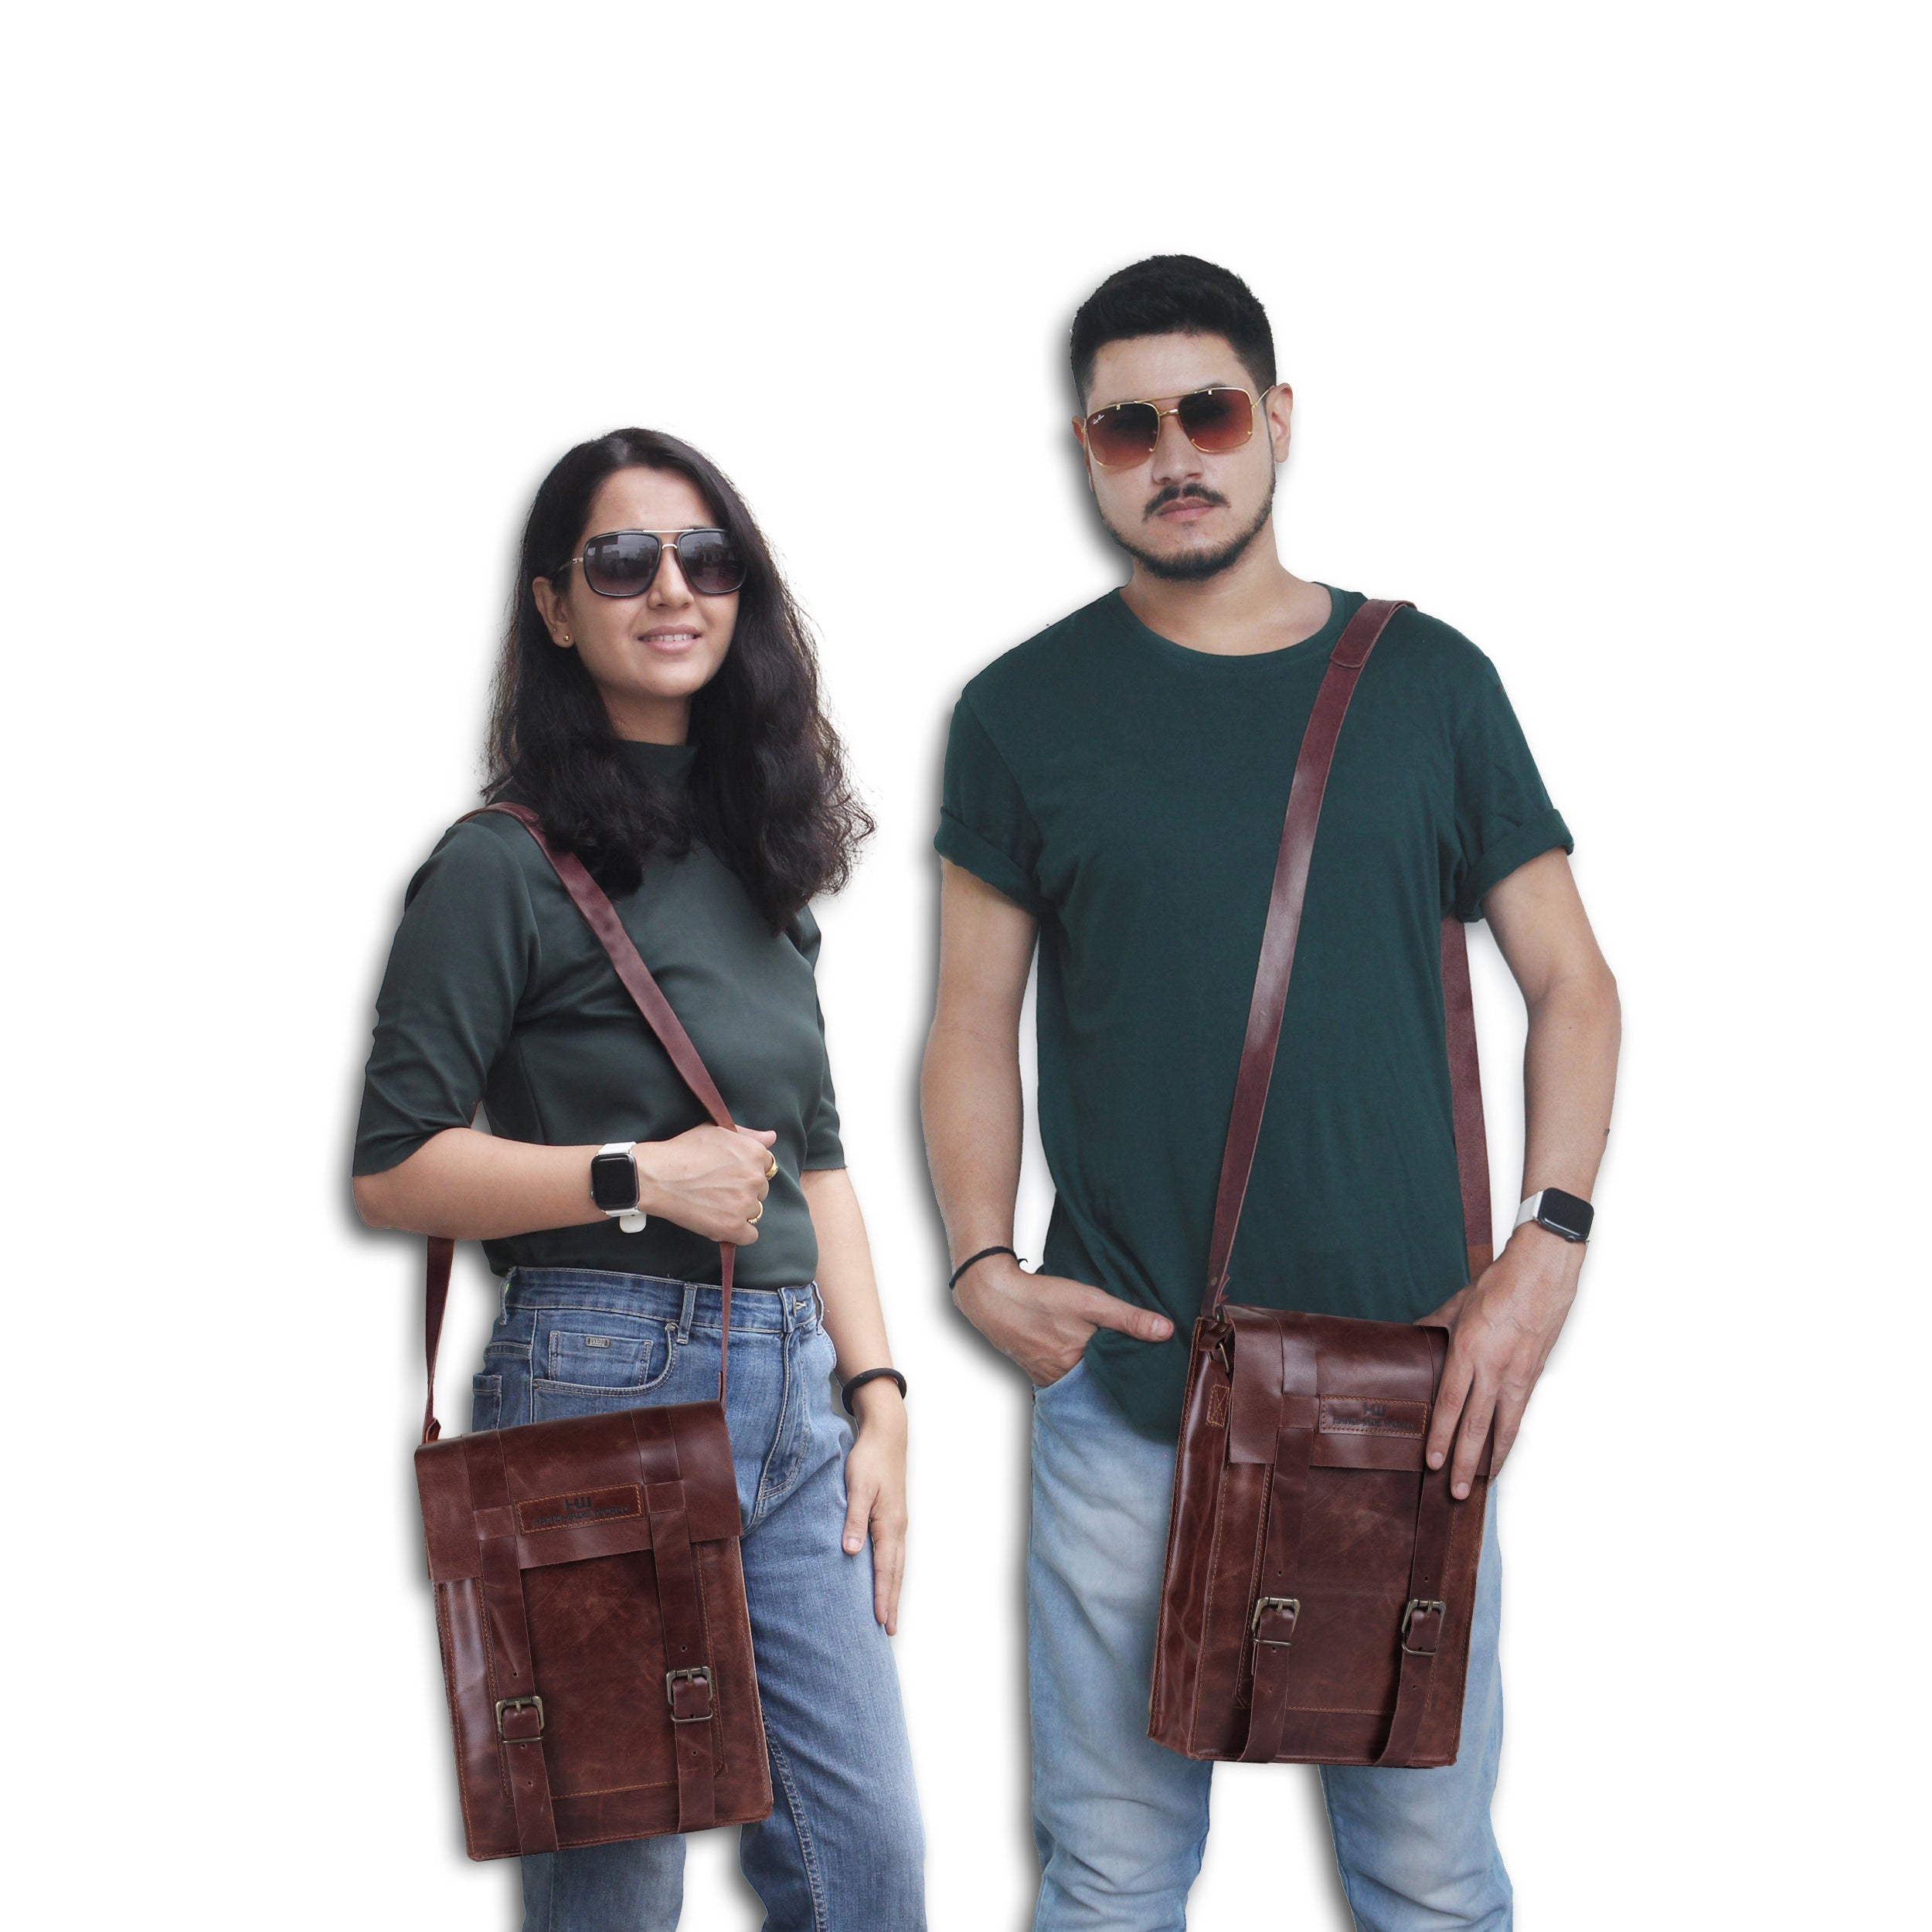 Large Leather iPad Messenger Bag With Adjustable Strap